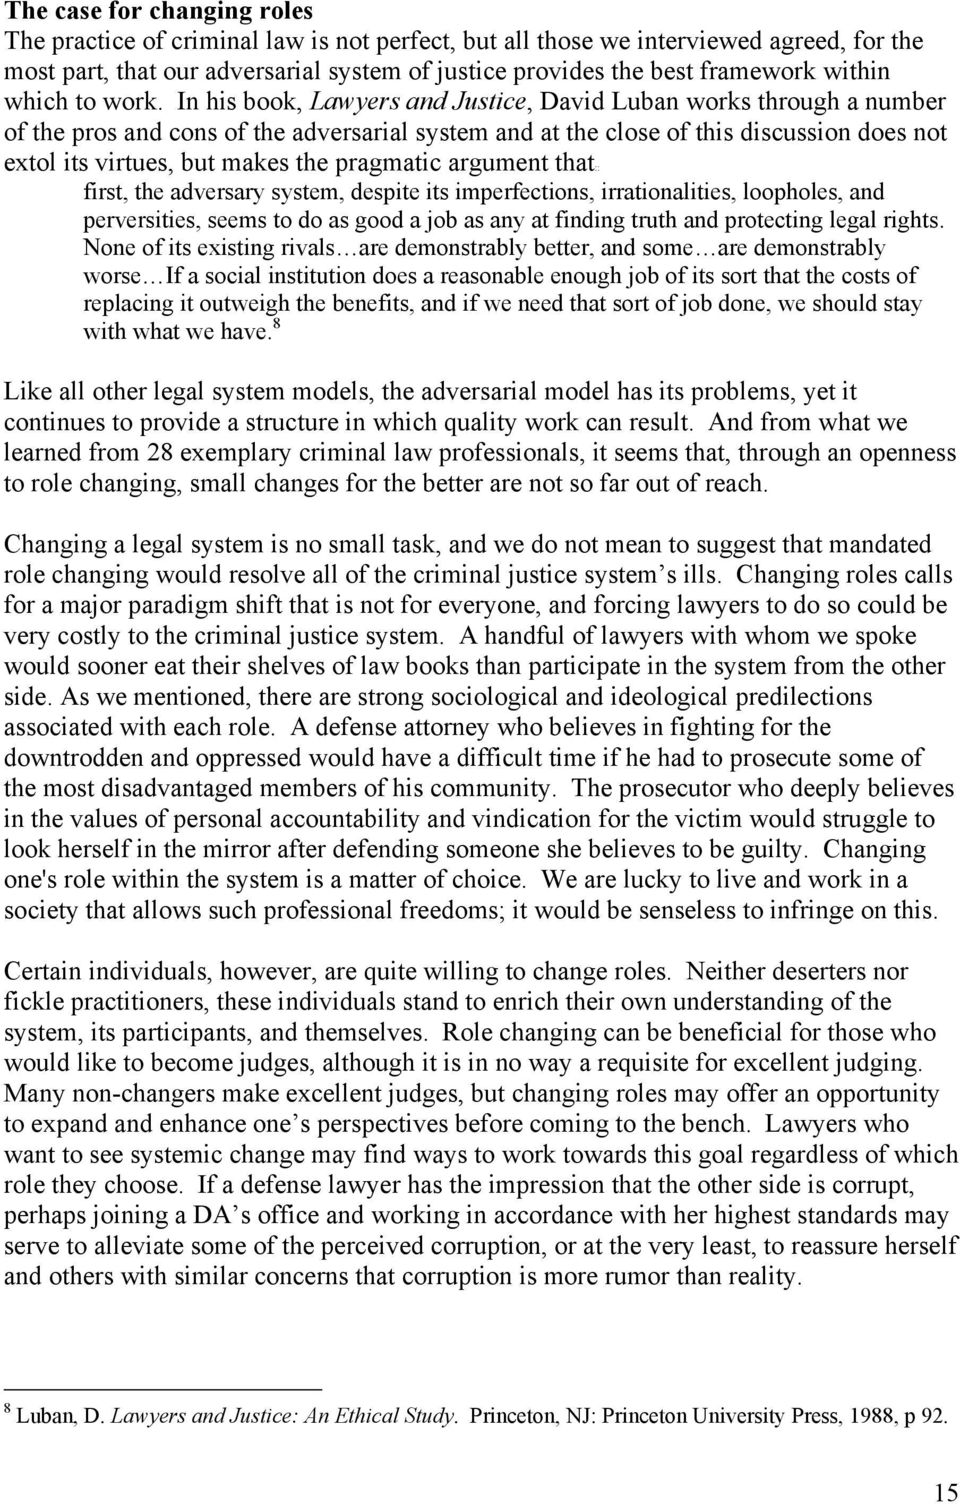 In his book, Lawyers and Justice, David Luban works through a number of the pros and cons of the adversarial system and at the close of this discussion does not extol its virtues, but makes the